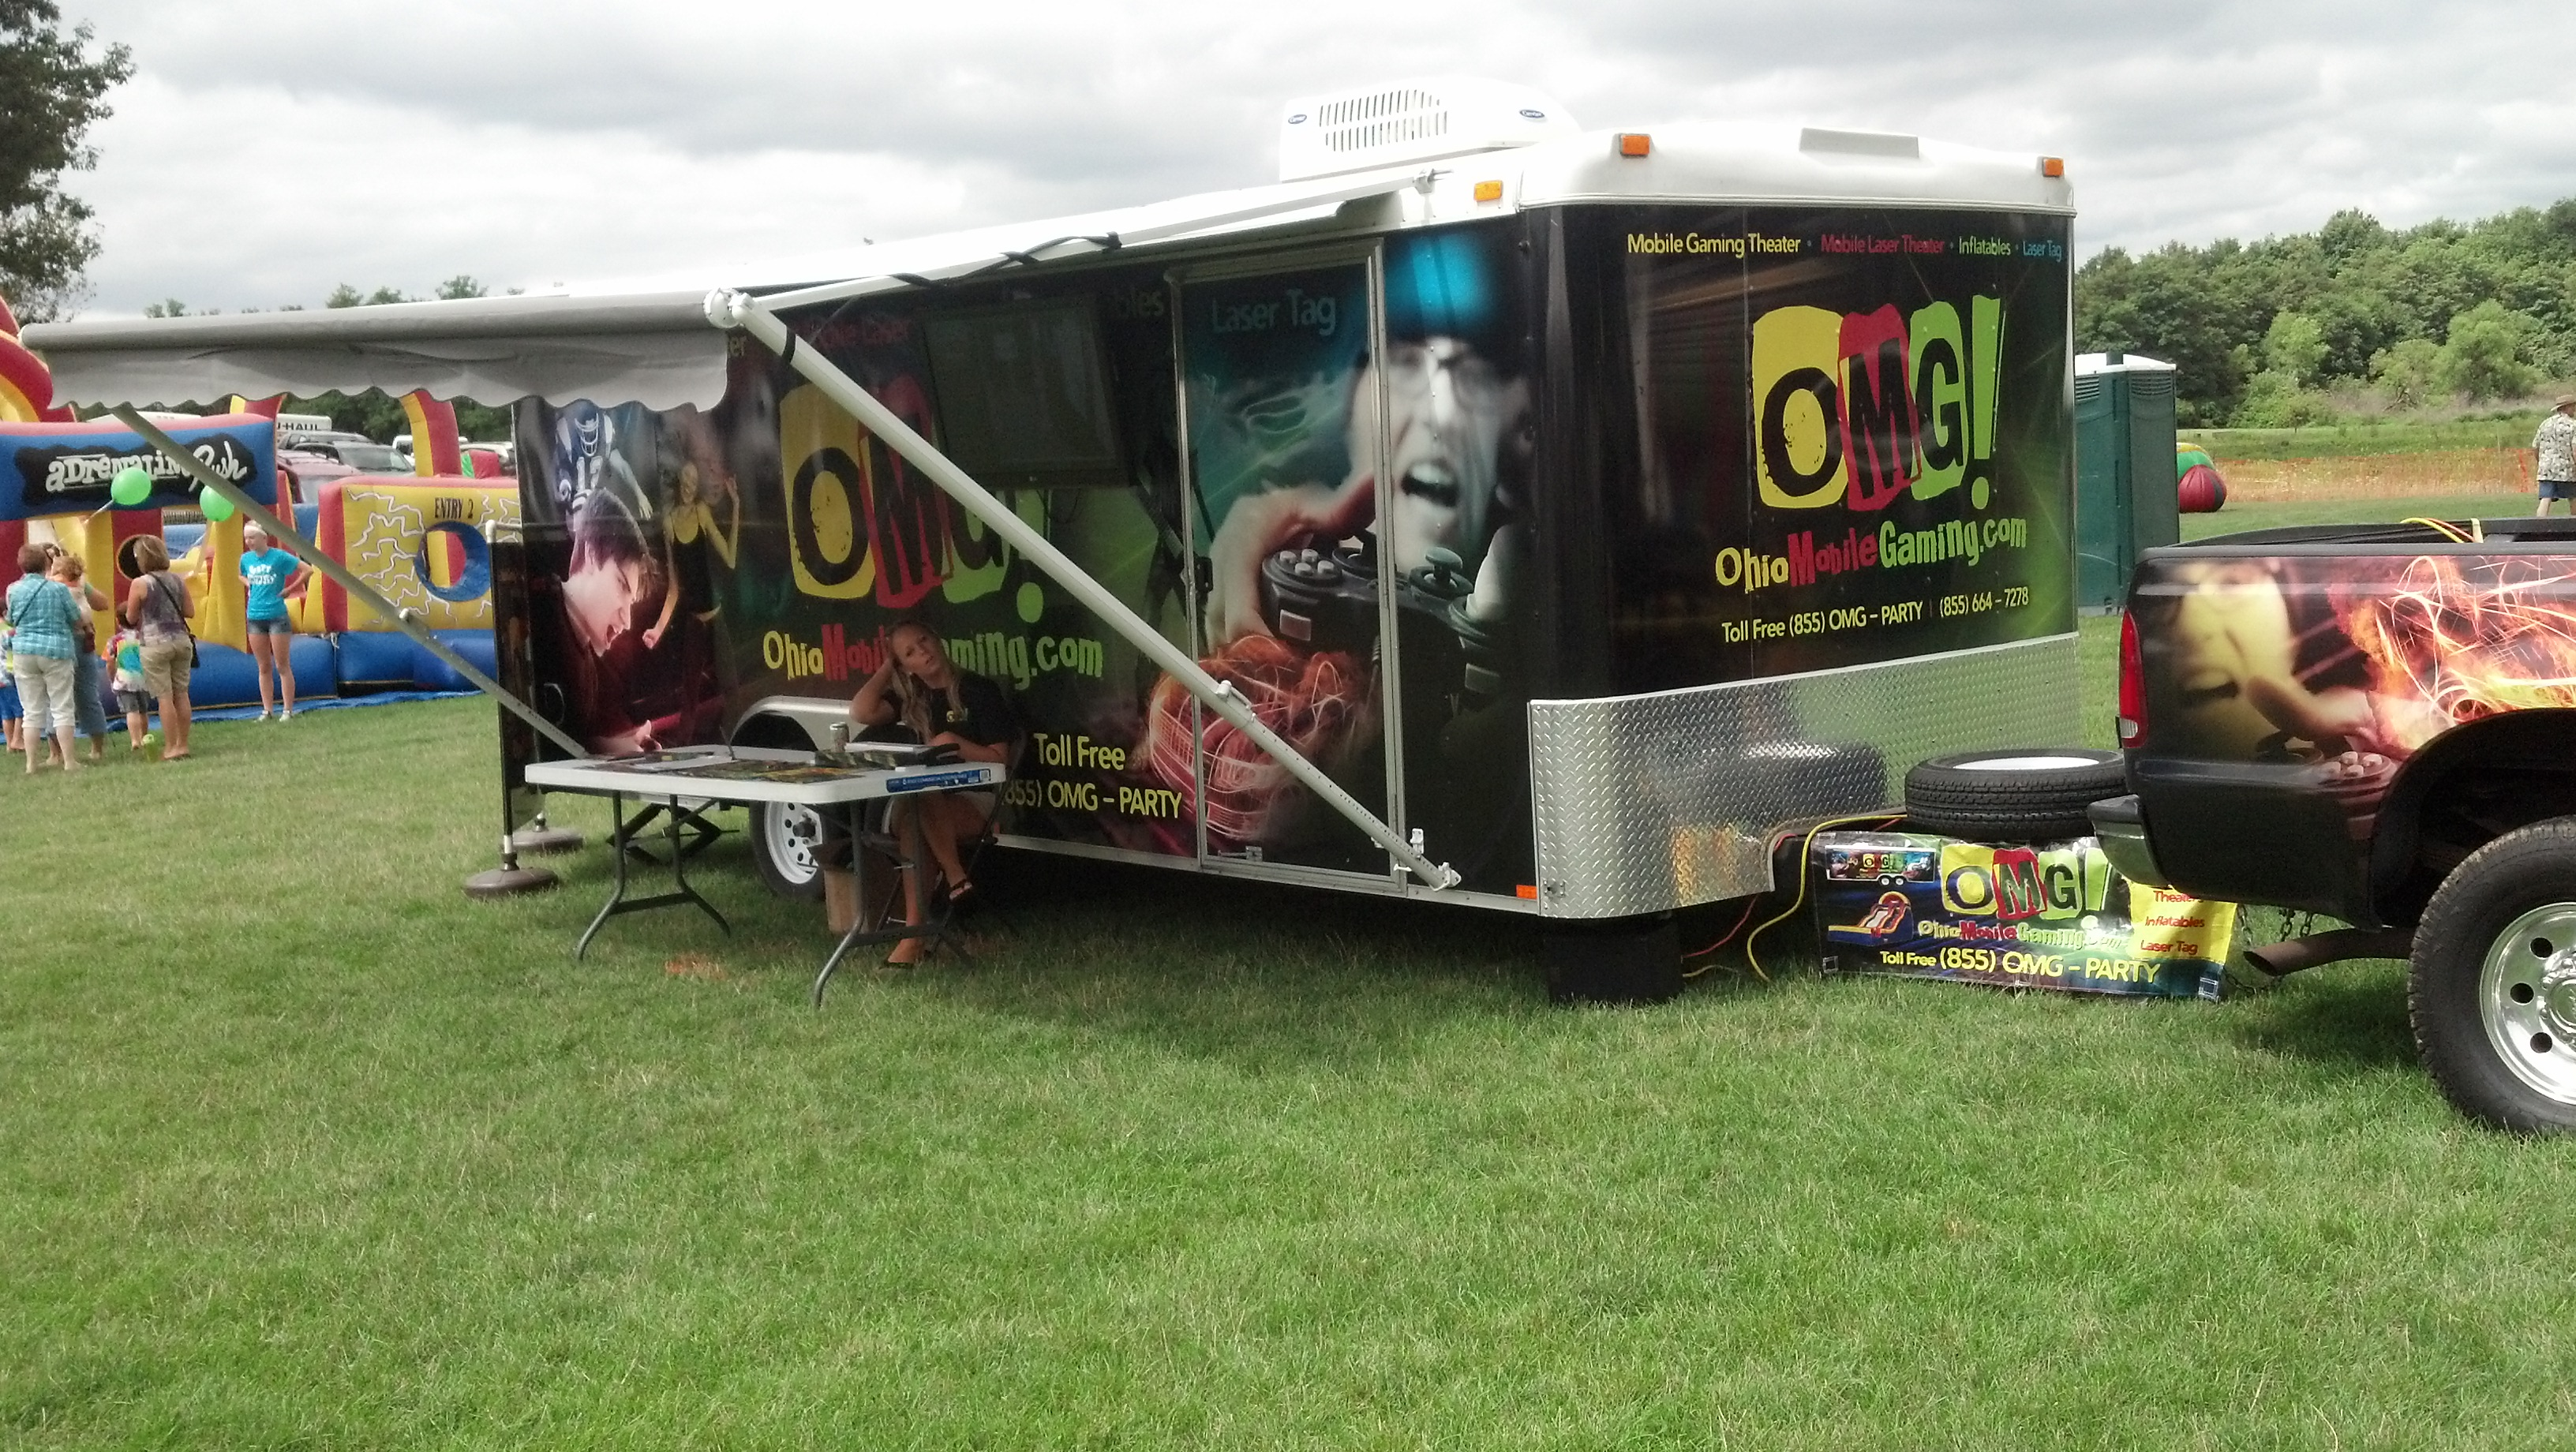 Barley Ohio Club >> Ohio Mobile Gaming Events – Birthday Party, Graduation, Prom & Special Event Highlight ...